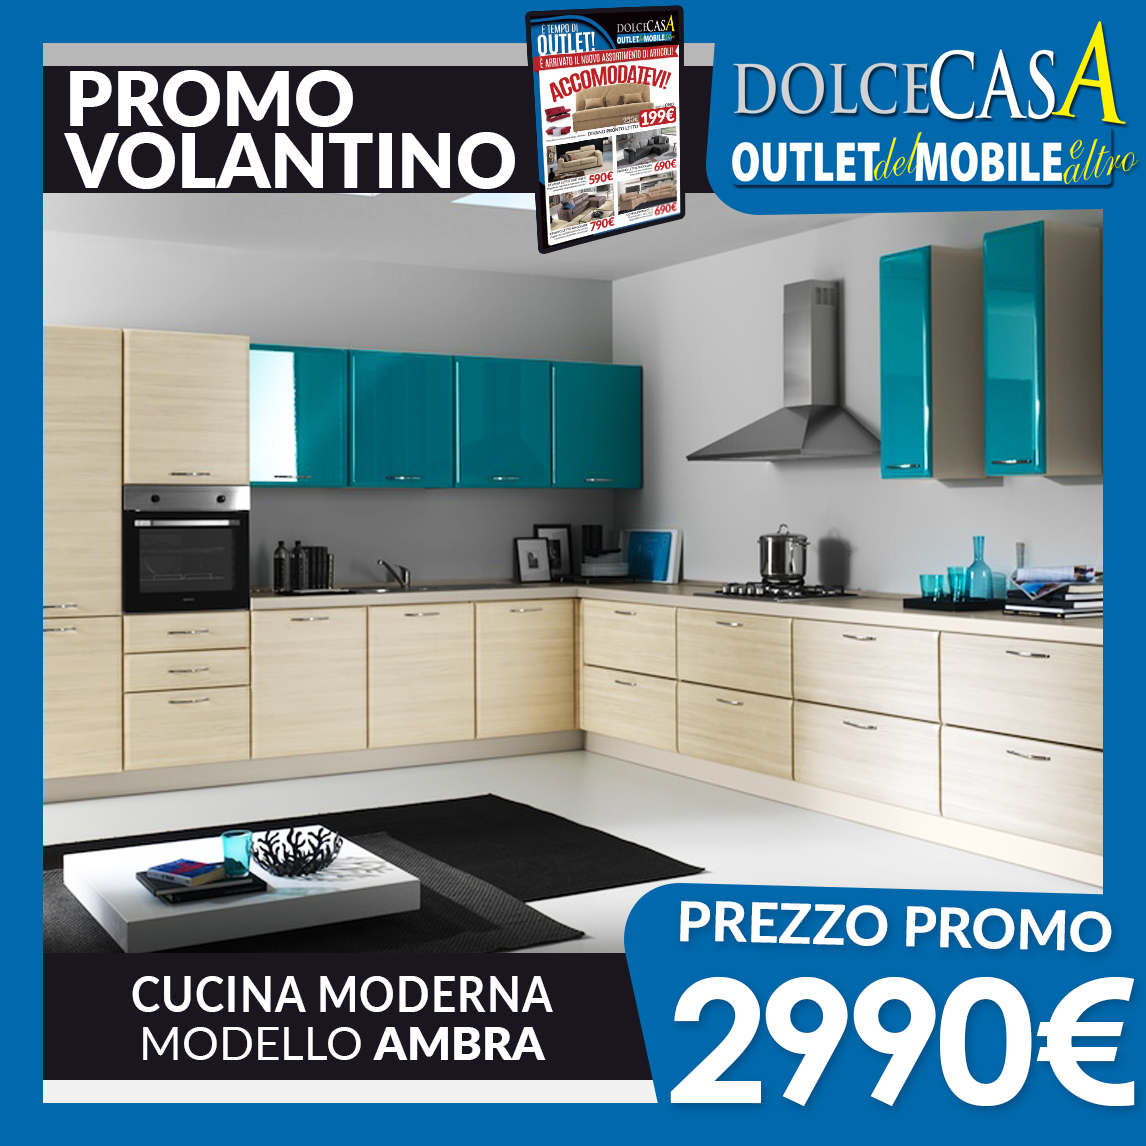 Ambra dolce casa outlet for Casa outlet